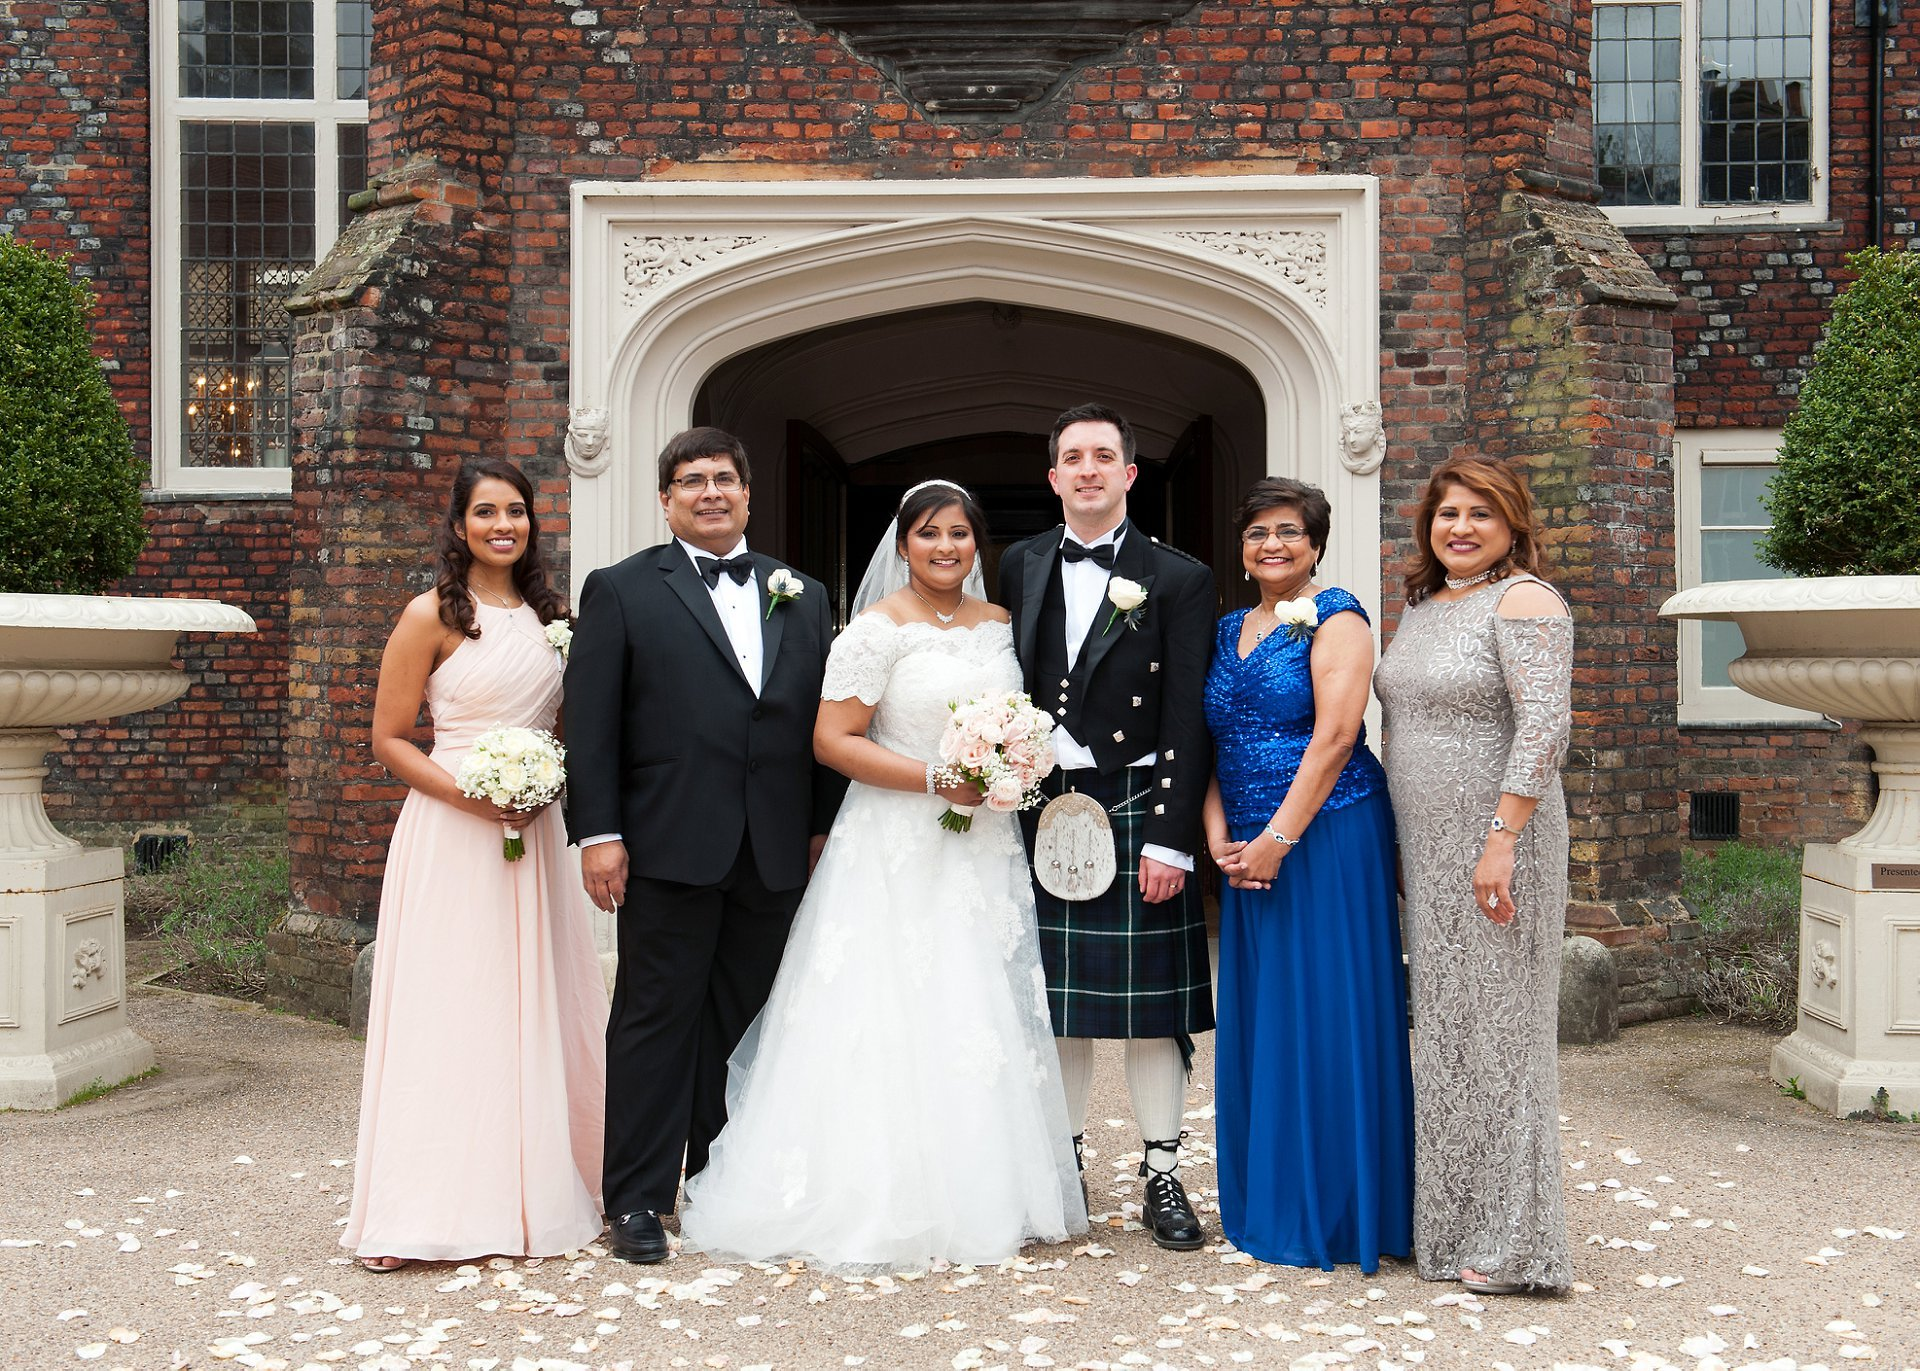 Group photography int he courtyard of Fulham Palace